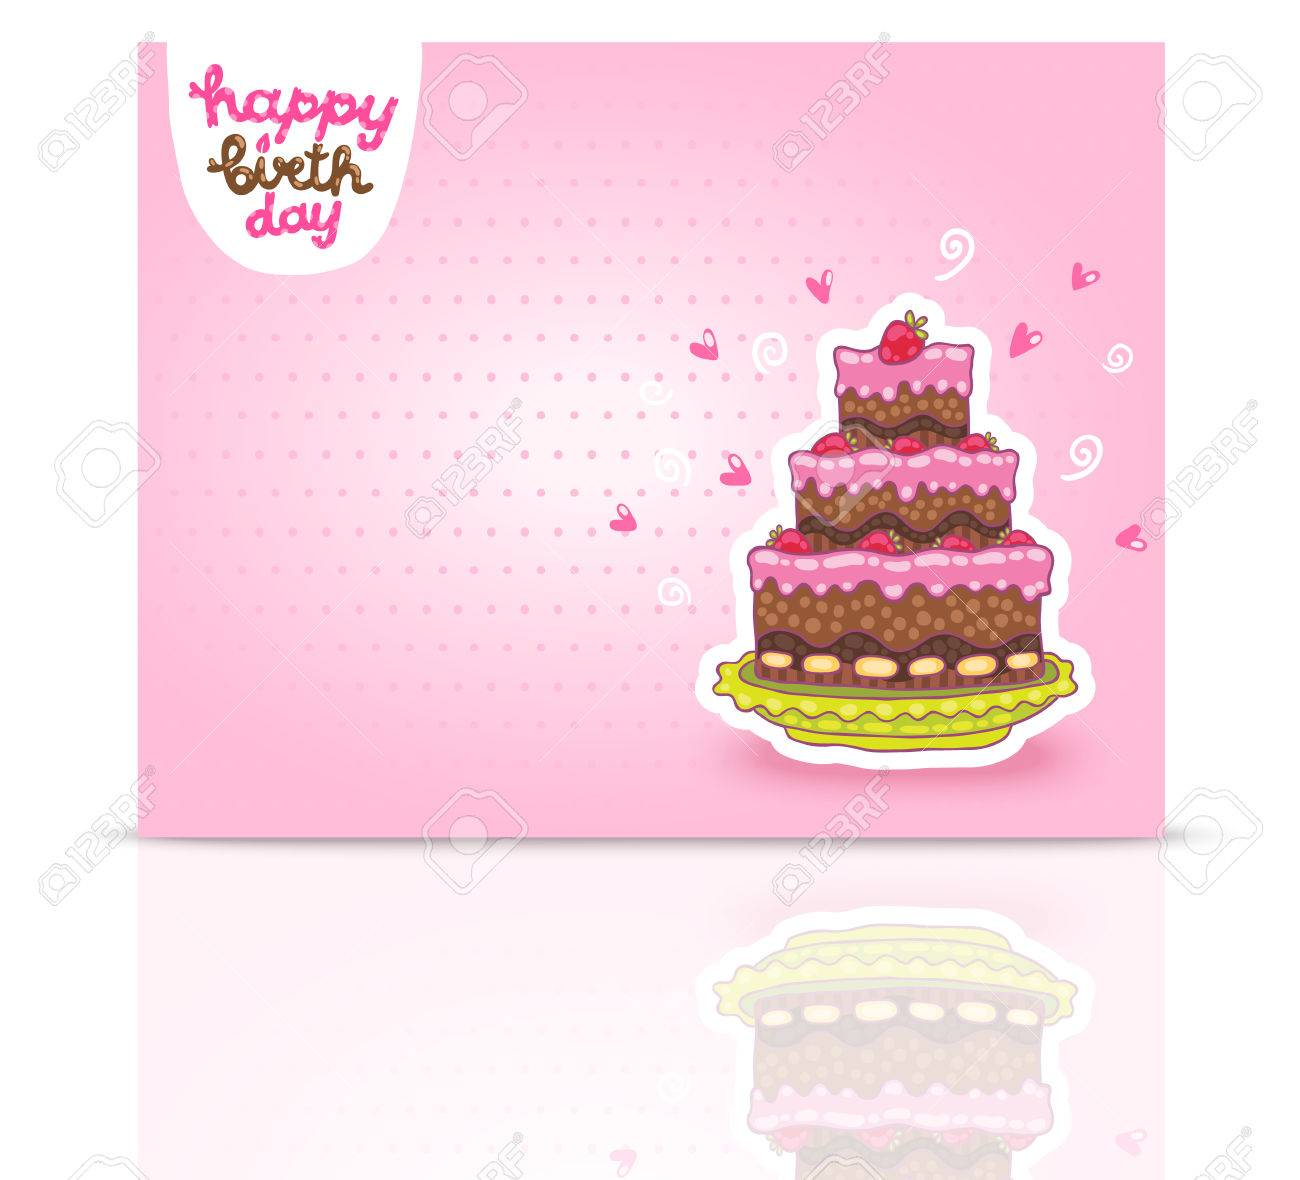 Nice Happy Birthday Card Background With Cake. Vector Holiday Party Template  Stock Vector   27665454